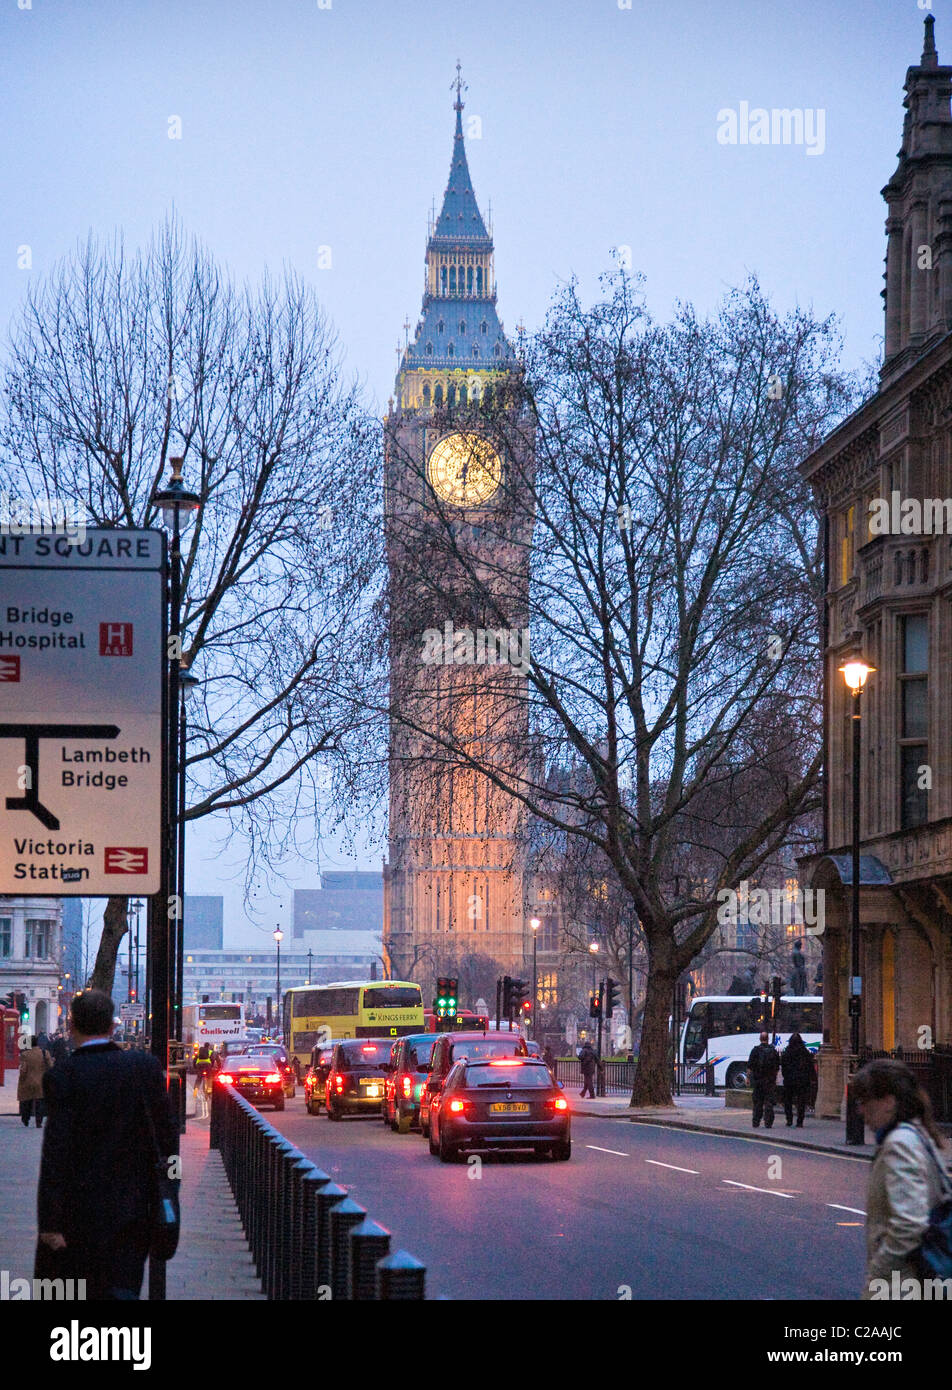 Big Ben or St Stephen's tower on Parliament Square in London at dusk on a winter's evening - Stock Image